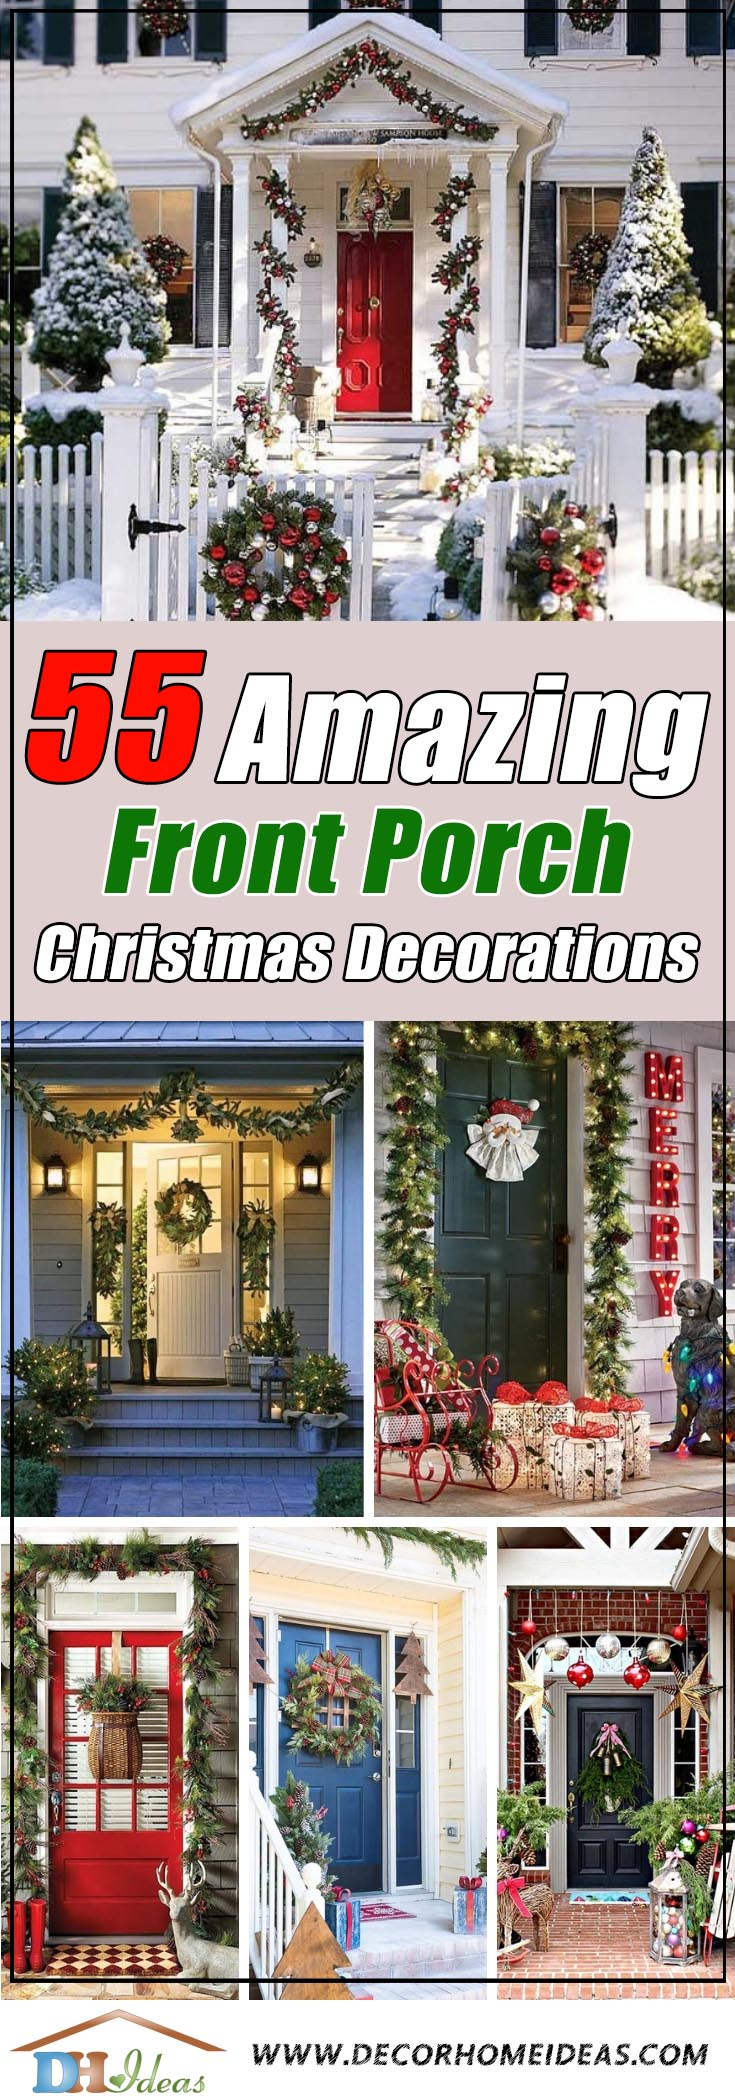 Front Porch Christmas Decorations #Christmasdecoration #Christmas #frontporch #porch #decoration #decorhomeideas